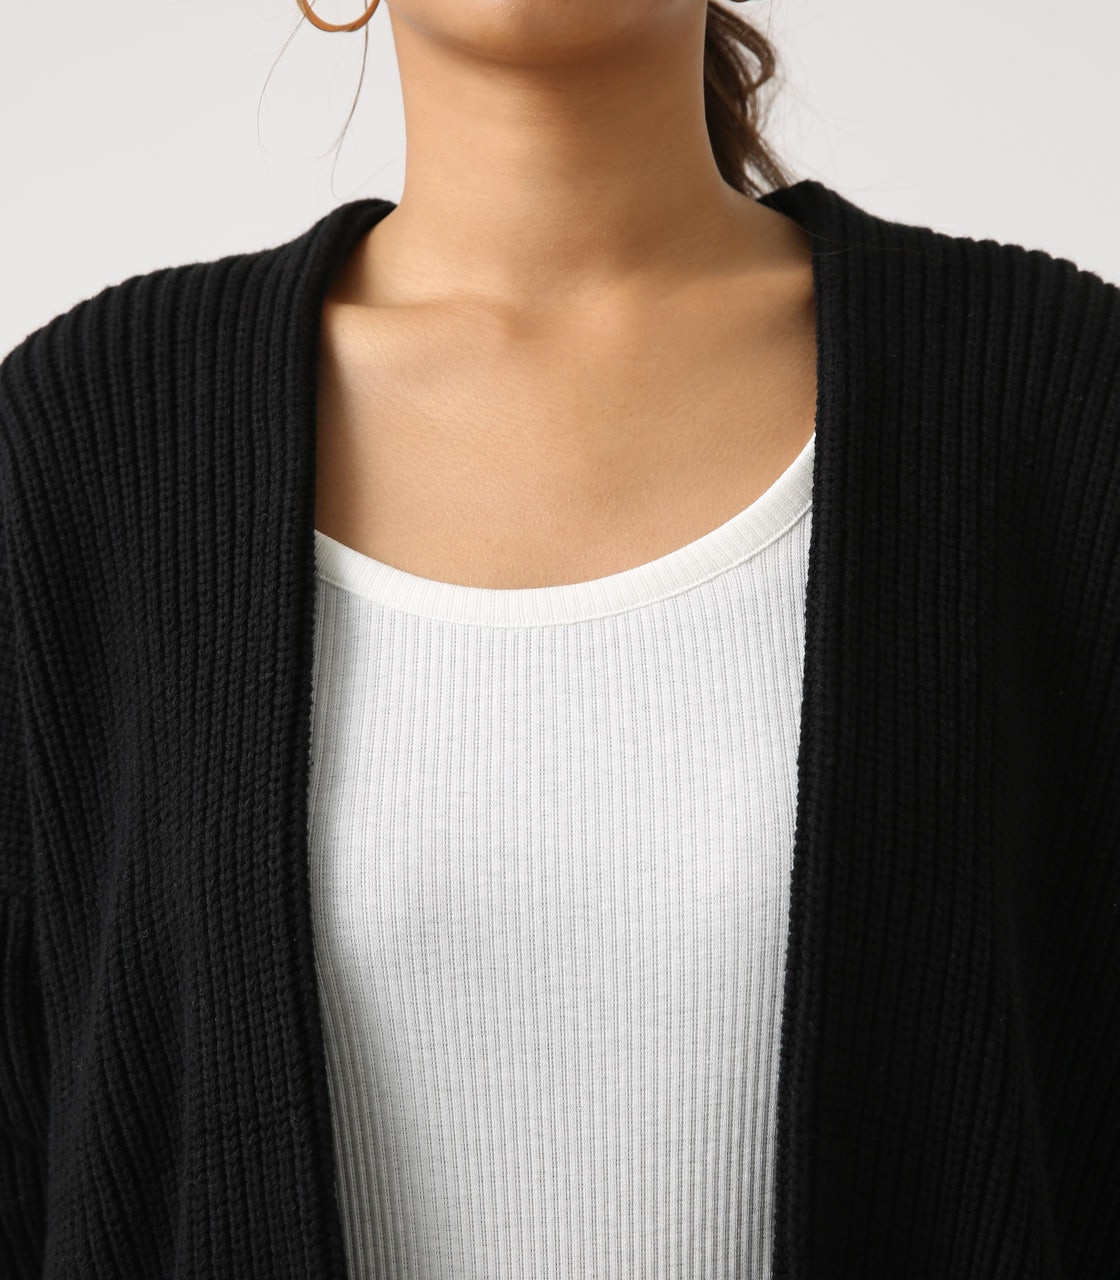 【AZUL BY MOUSSY】LOWGAUGE LONG KNIT CARDIGAN 詳細画像 BLK 8